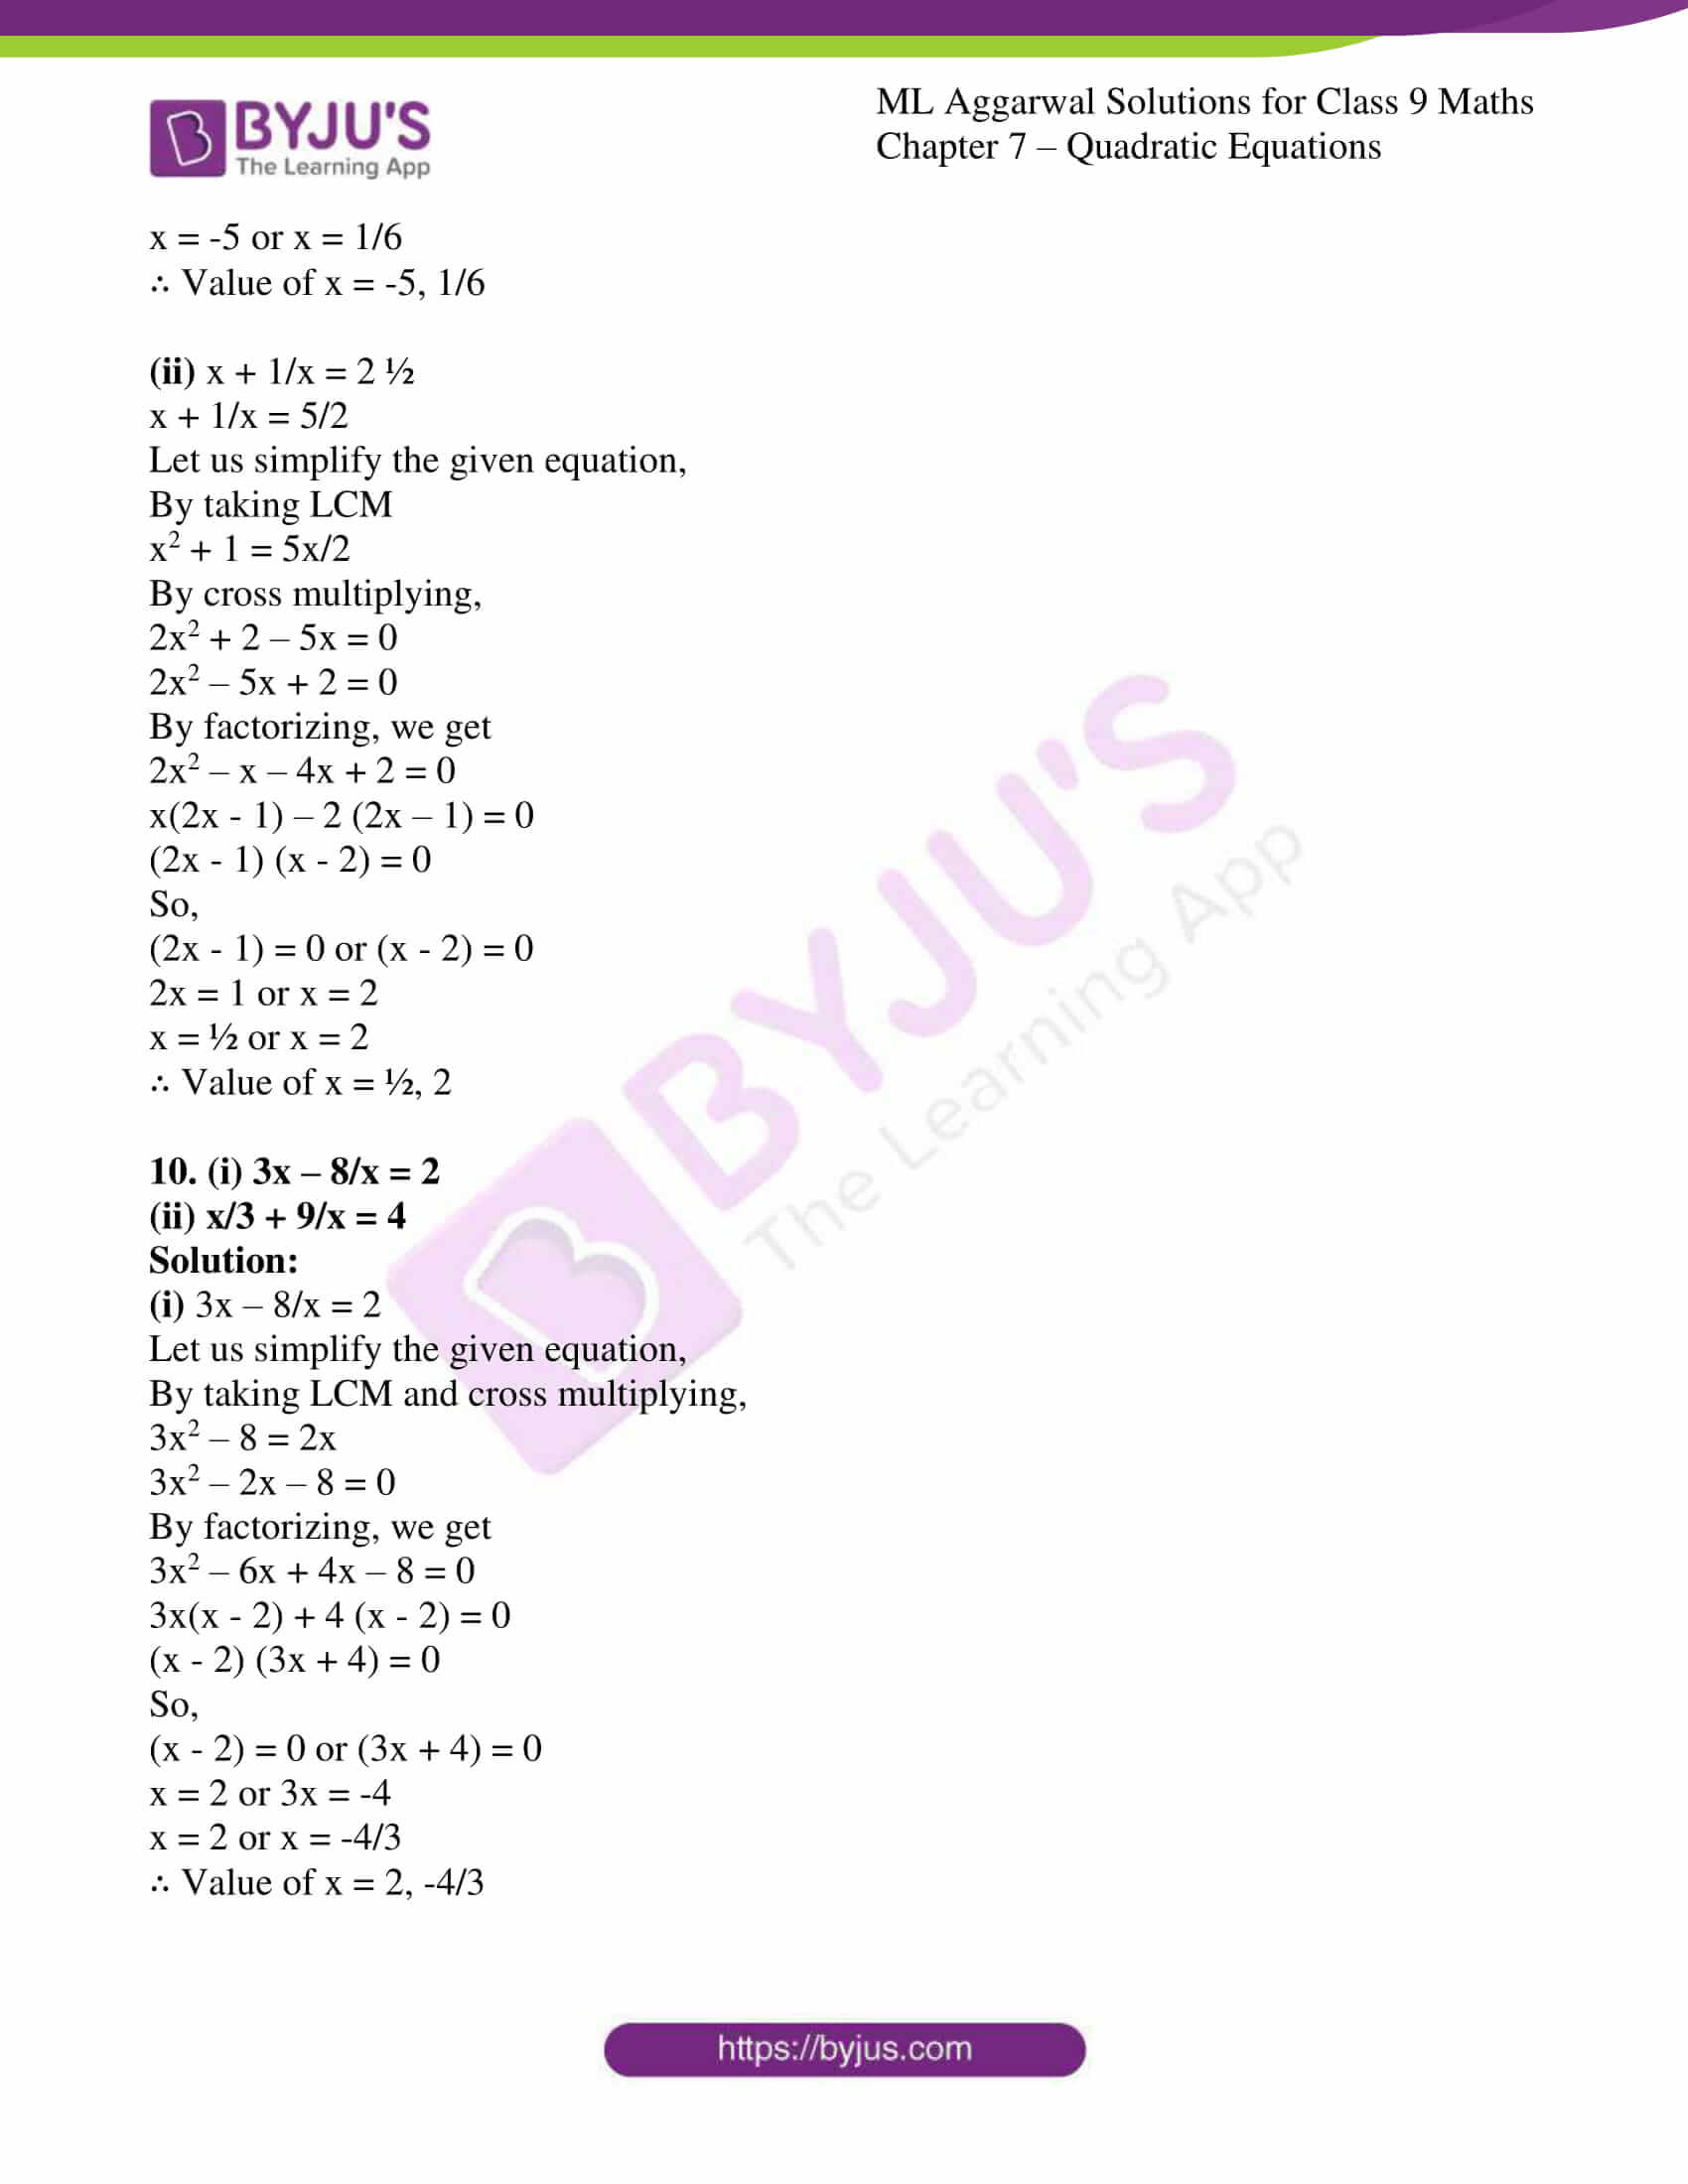 ml aggarwal solutions for class 9 maths chapter 7 07